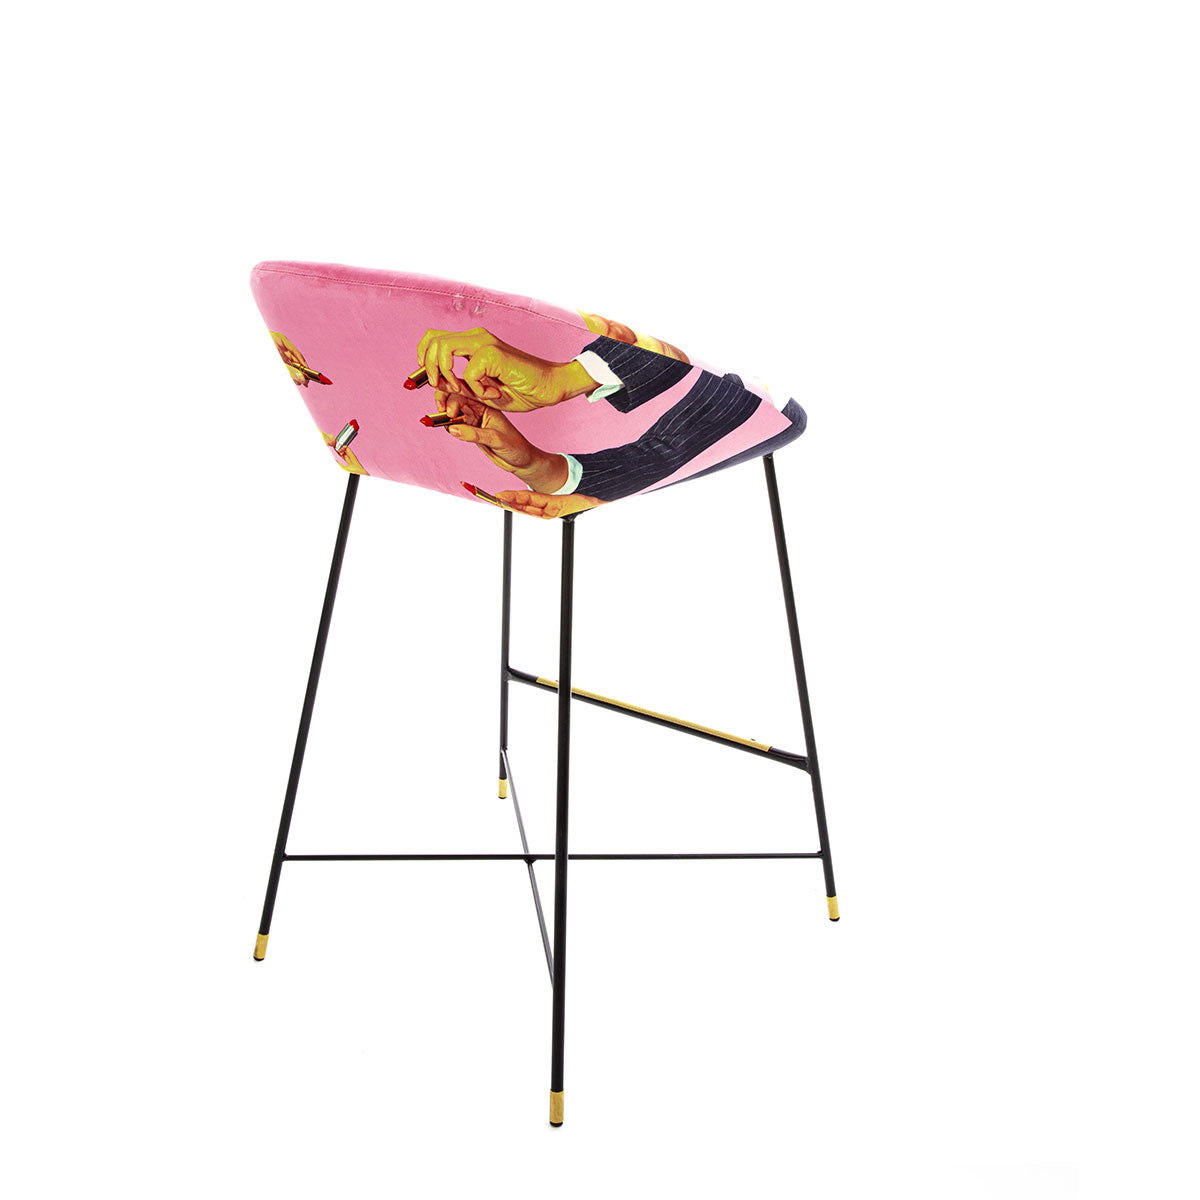 Seletti X Toiletpaper Magazine High Stool Pink Lipsticks